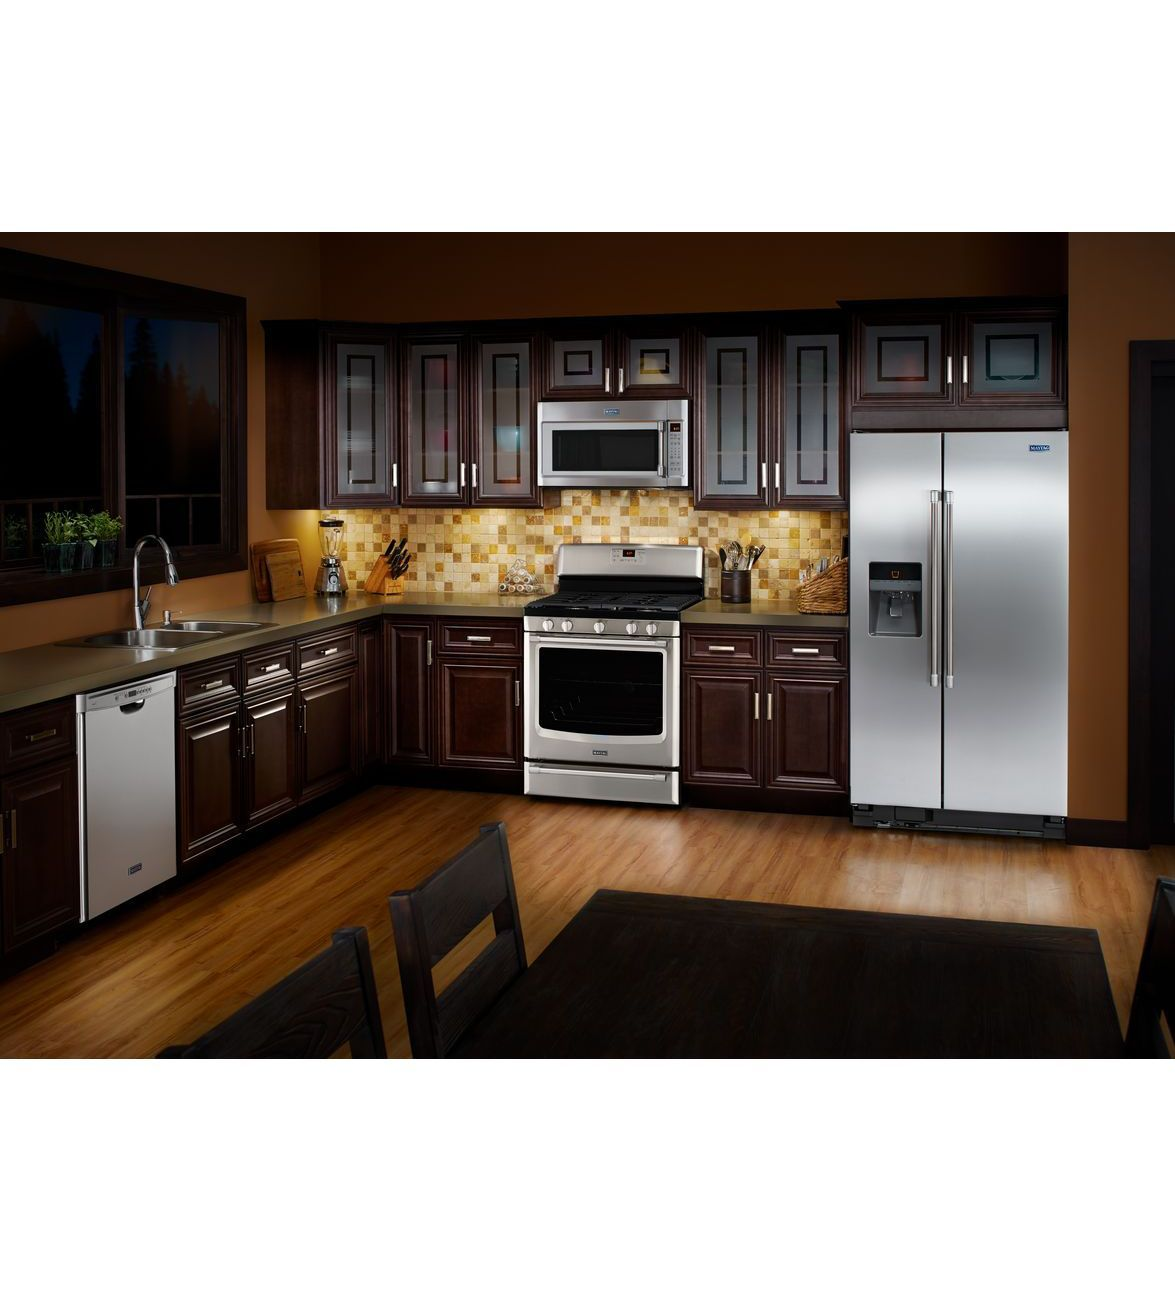 Side by side double oven gas stove - Side By Side Refrigerator With 36 Double Ovensdouble Oven Gas Rangestainless